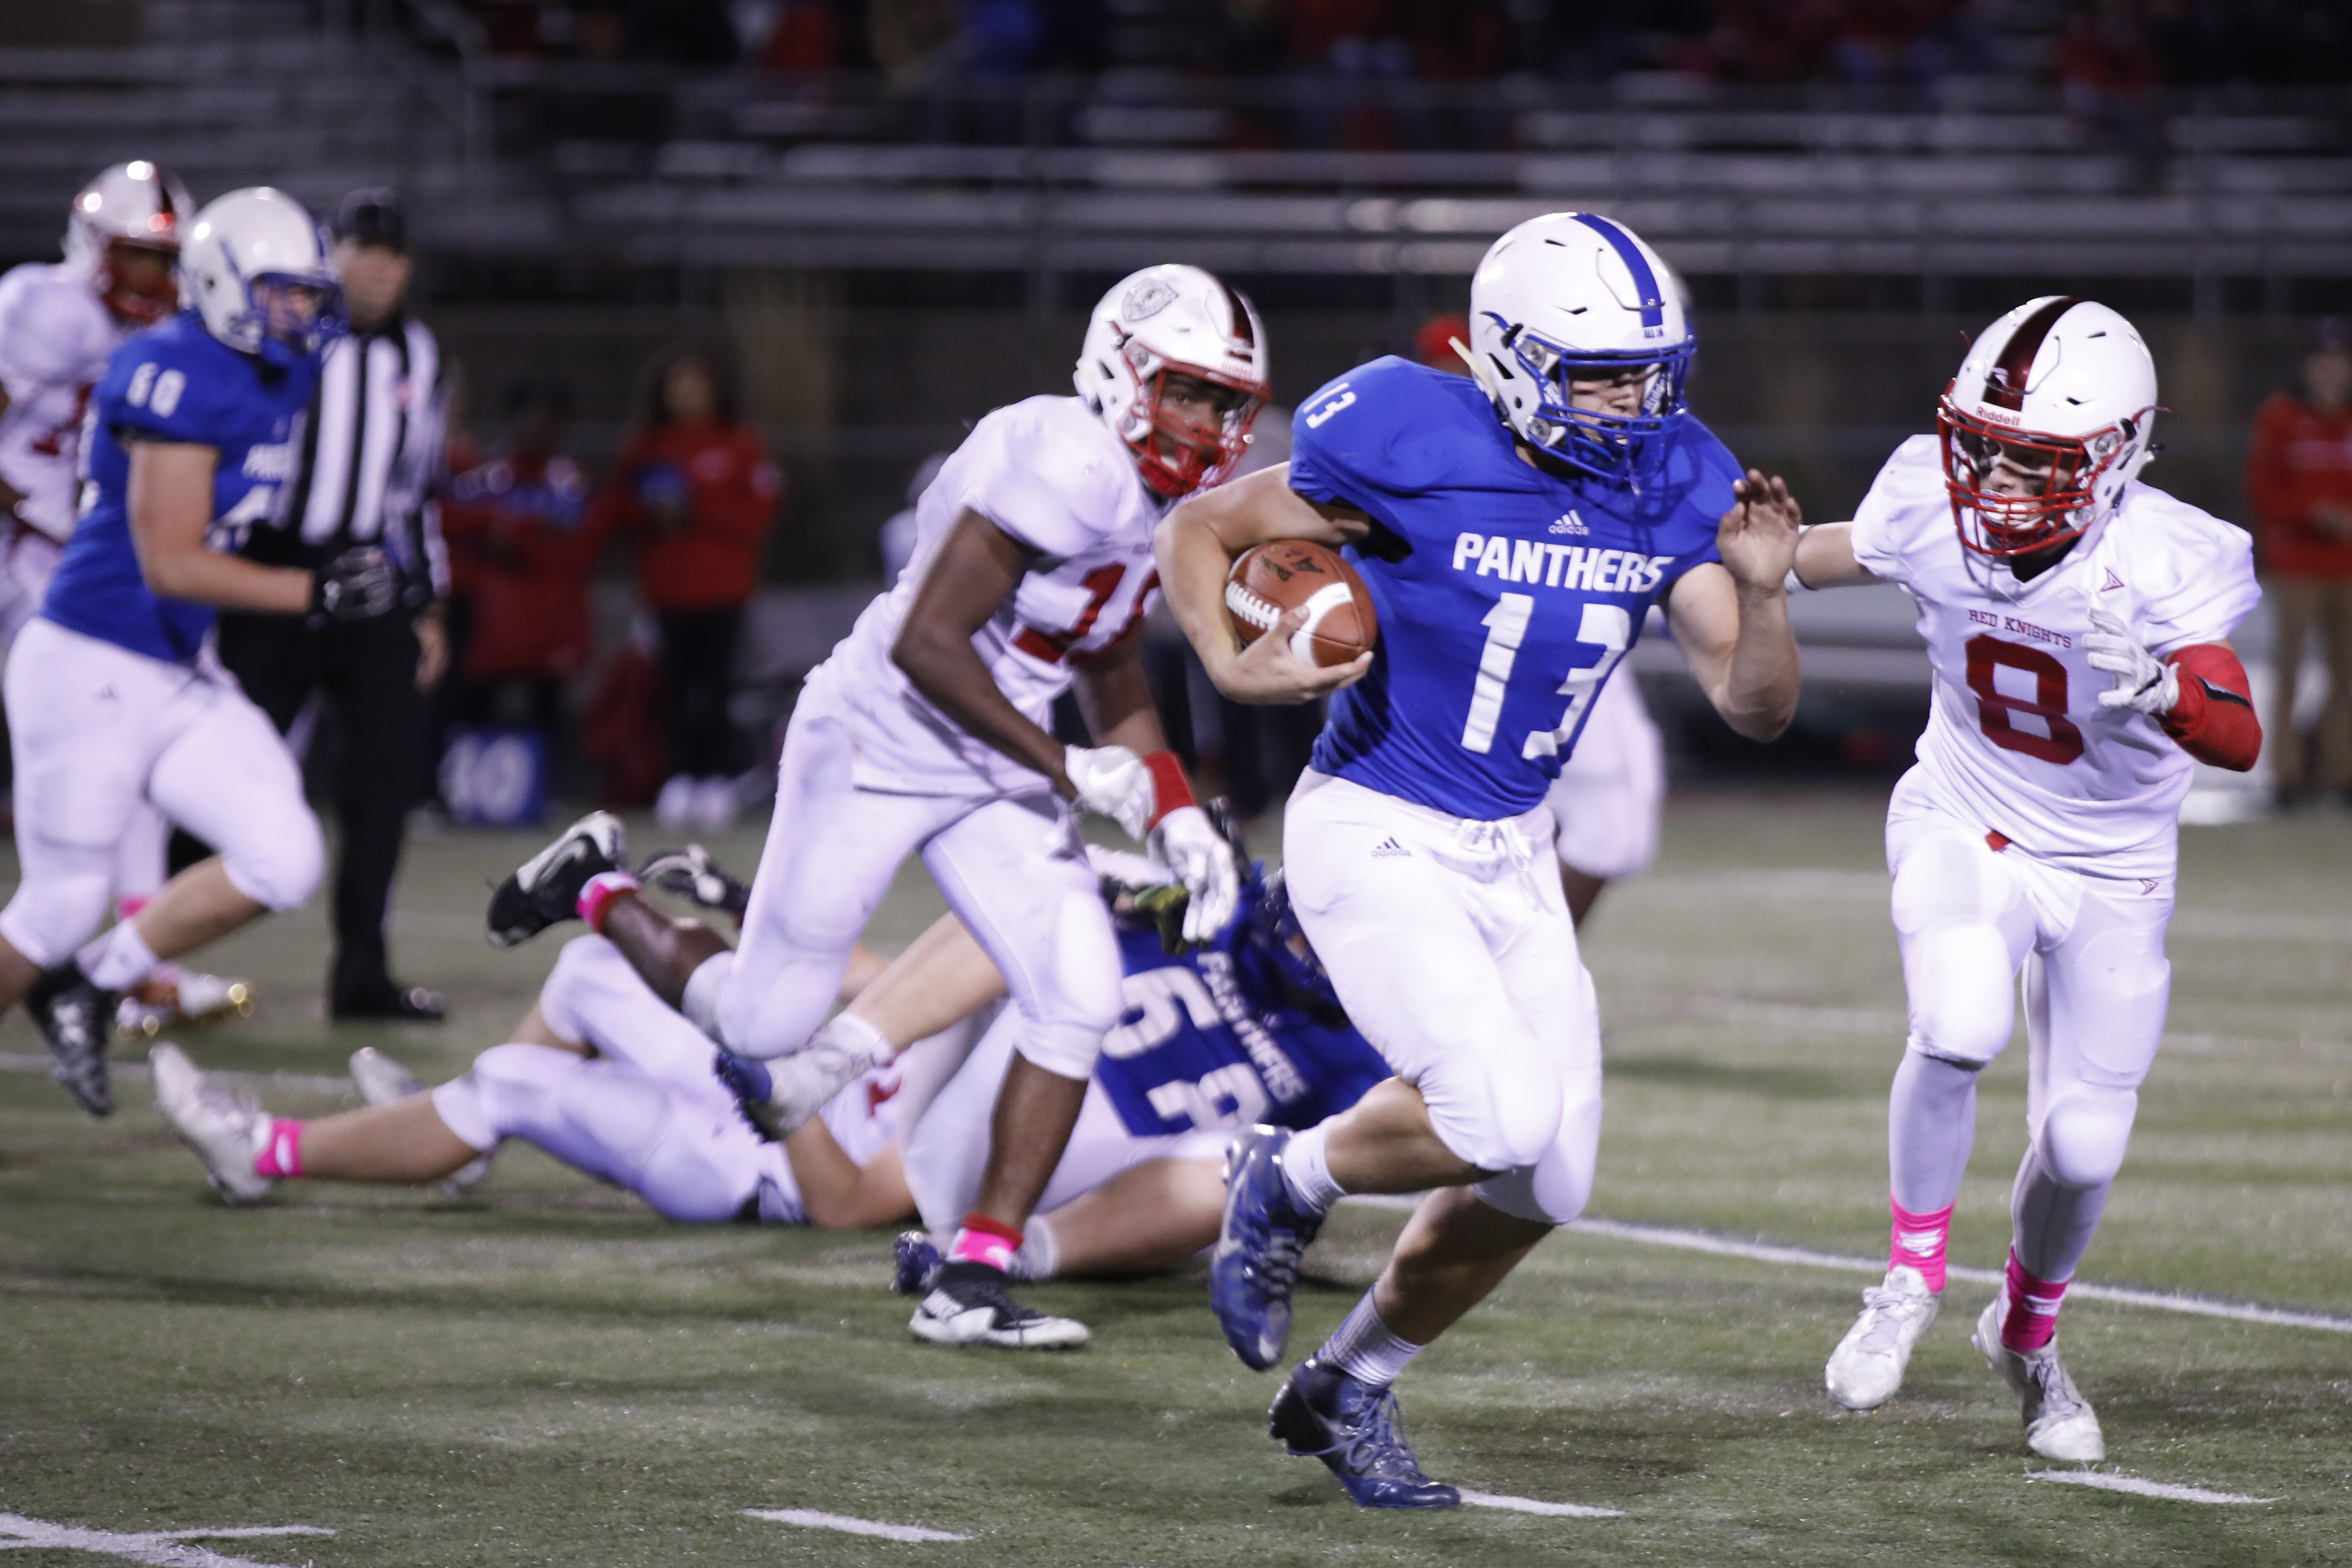 Zachary Ojile (13), QB for Spring Lake Park decided to run the ball while Clyde Sellke (8) of Bernilde tries to tackle him. Zachary scored the final touchdown in overtime to help his team win a 19-13 victory at home. Photo by Chris Juhn